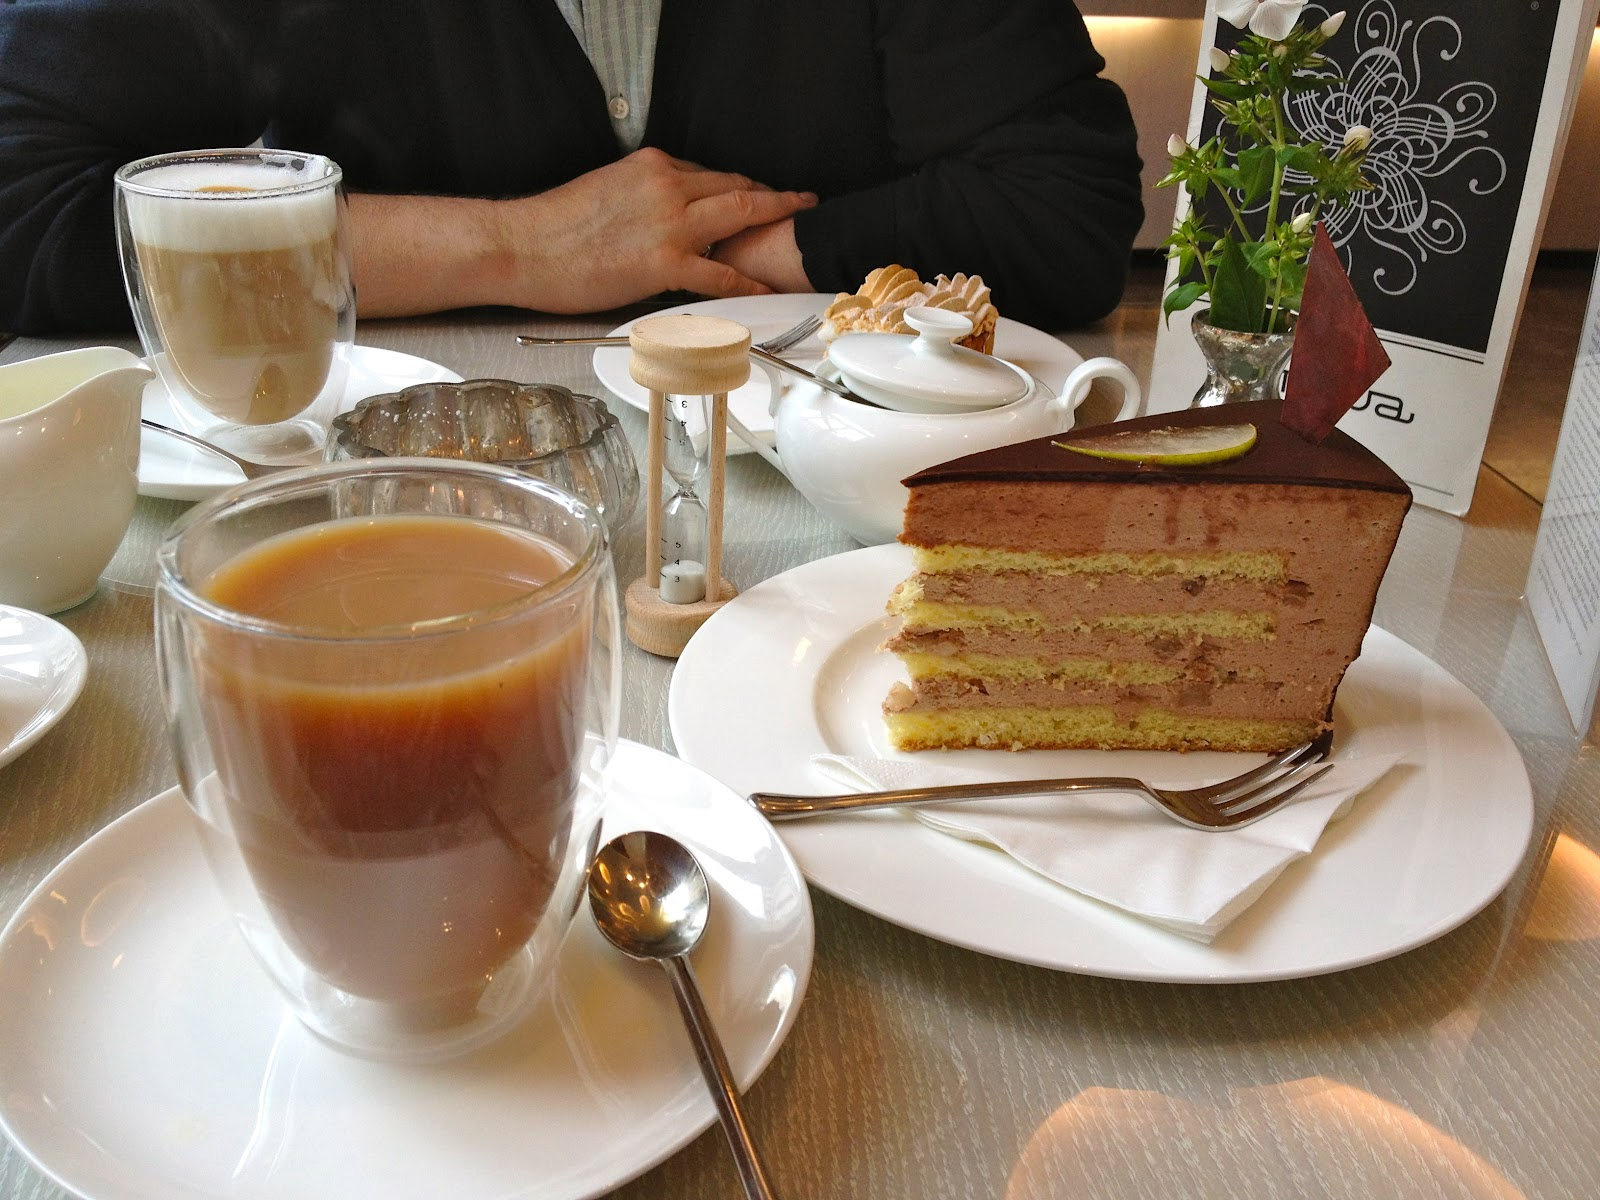 Kuchen Berlin Mitte Afternoon Tea Total Review Princess Cheesecake Mitte